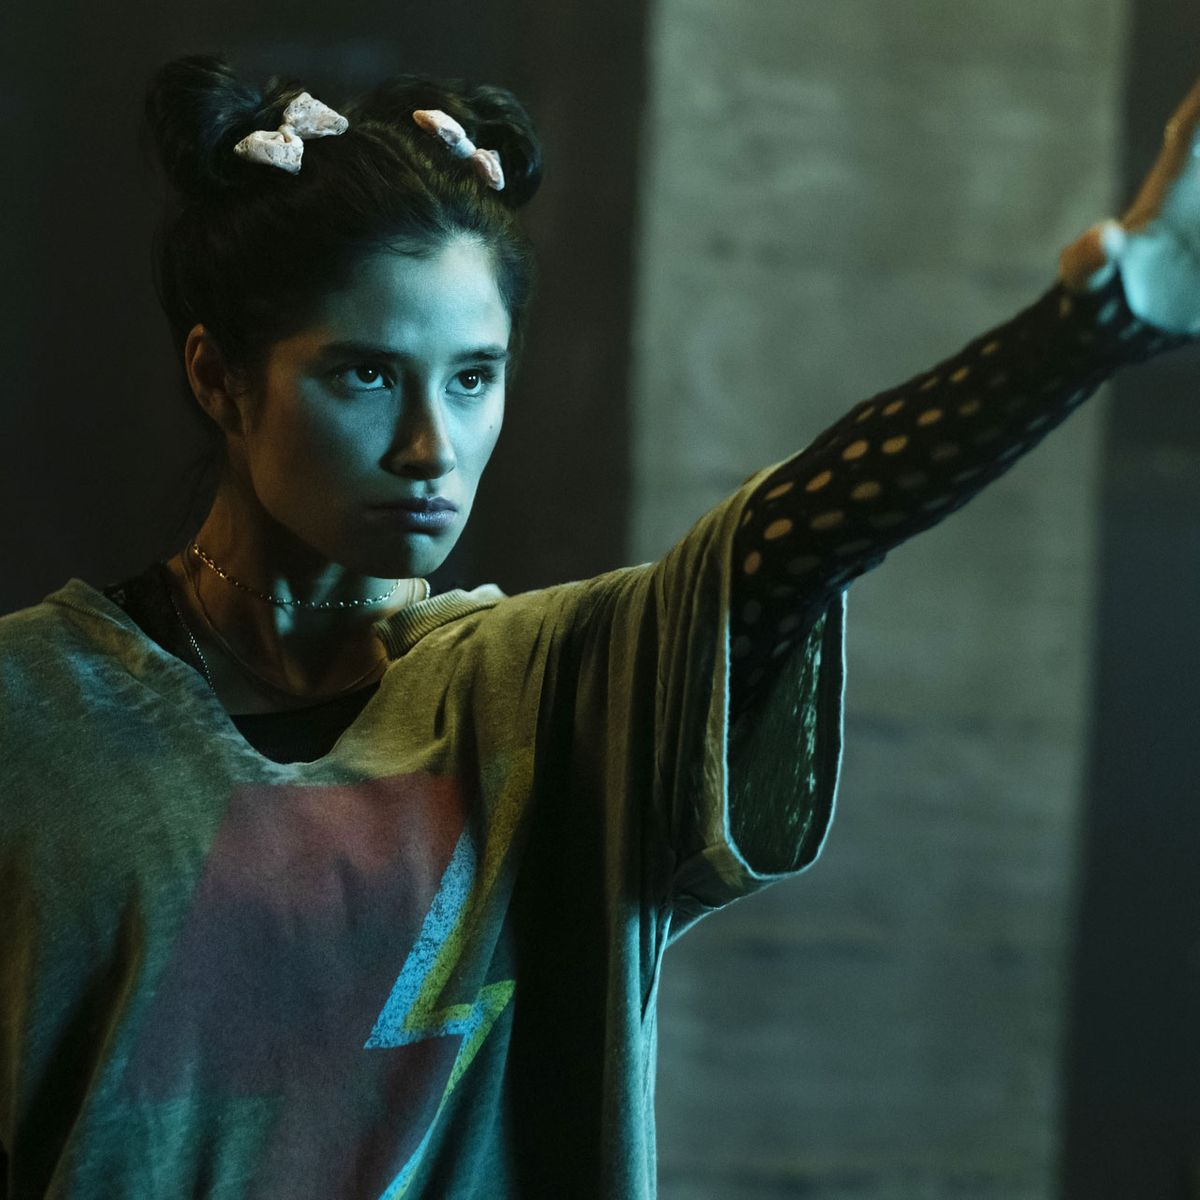 Doom Patrol Season 2 Episode 4 Recap Finger Patrol